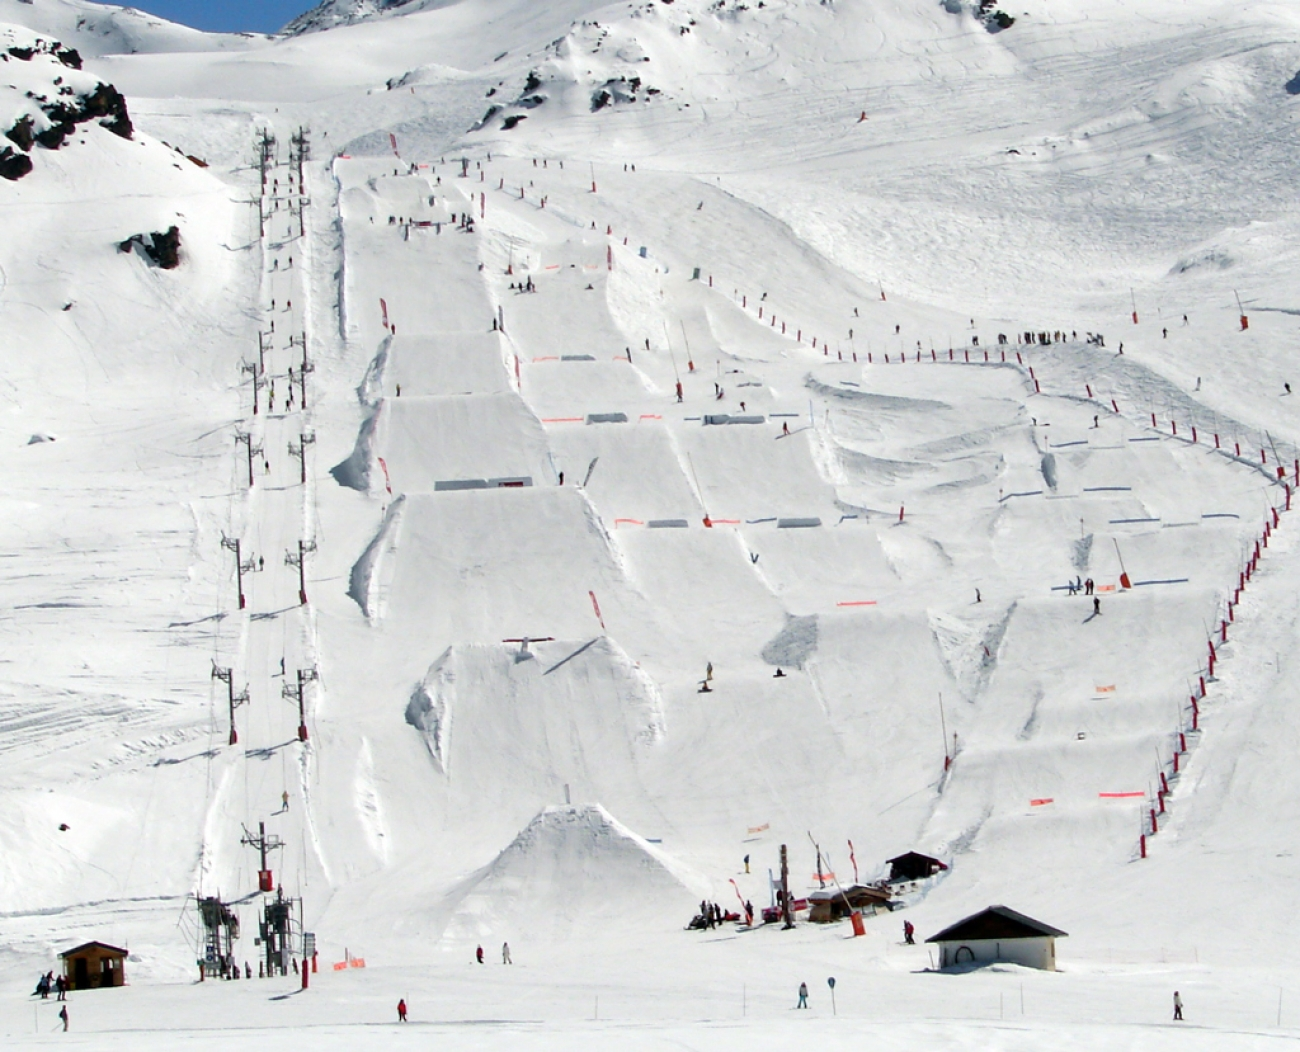 Sfr Freeskiing Tour - Val Thorens